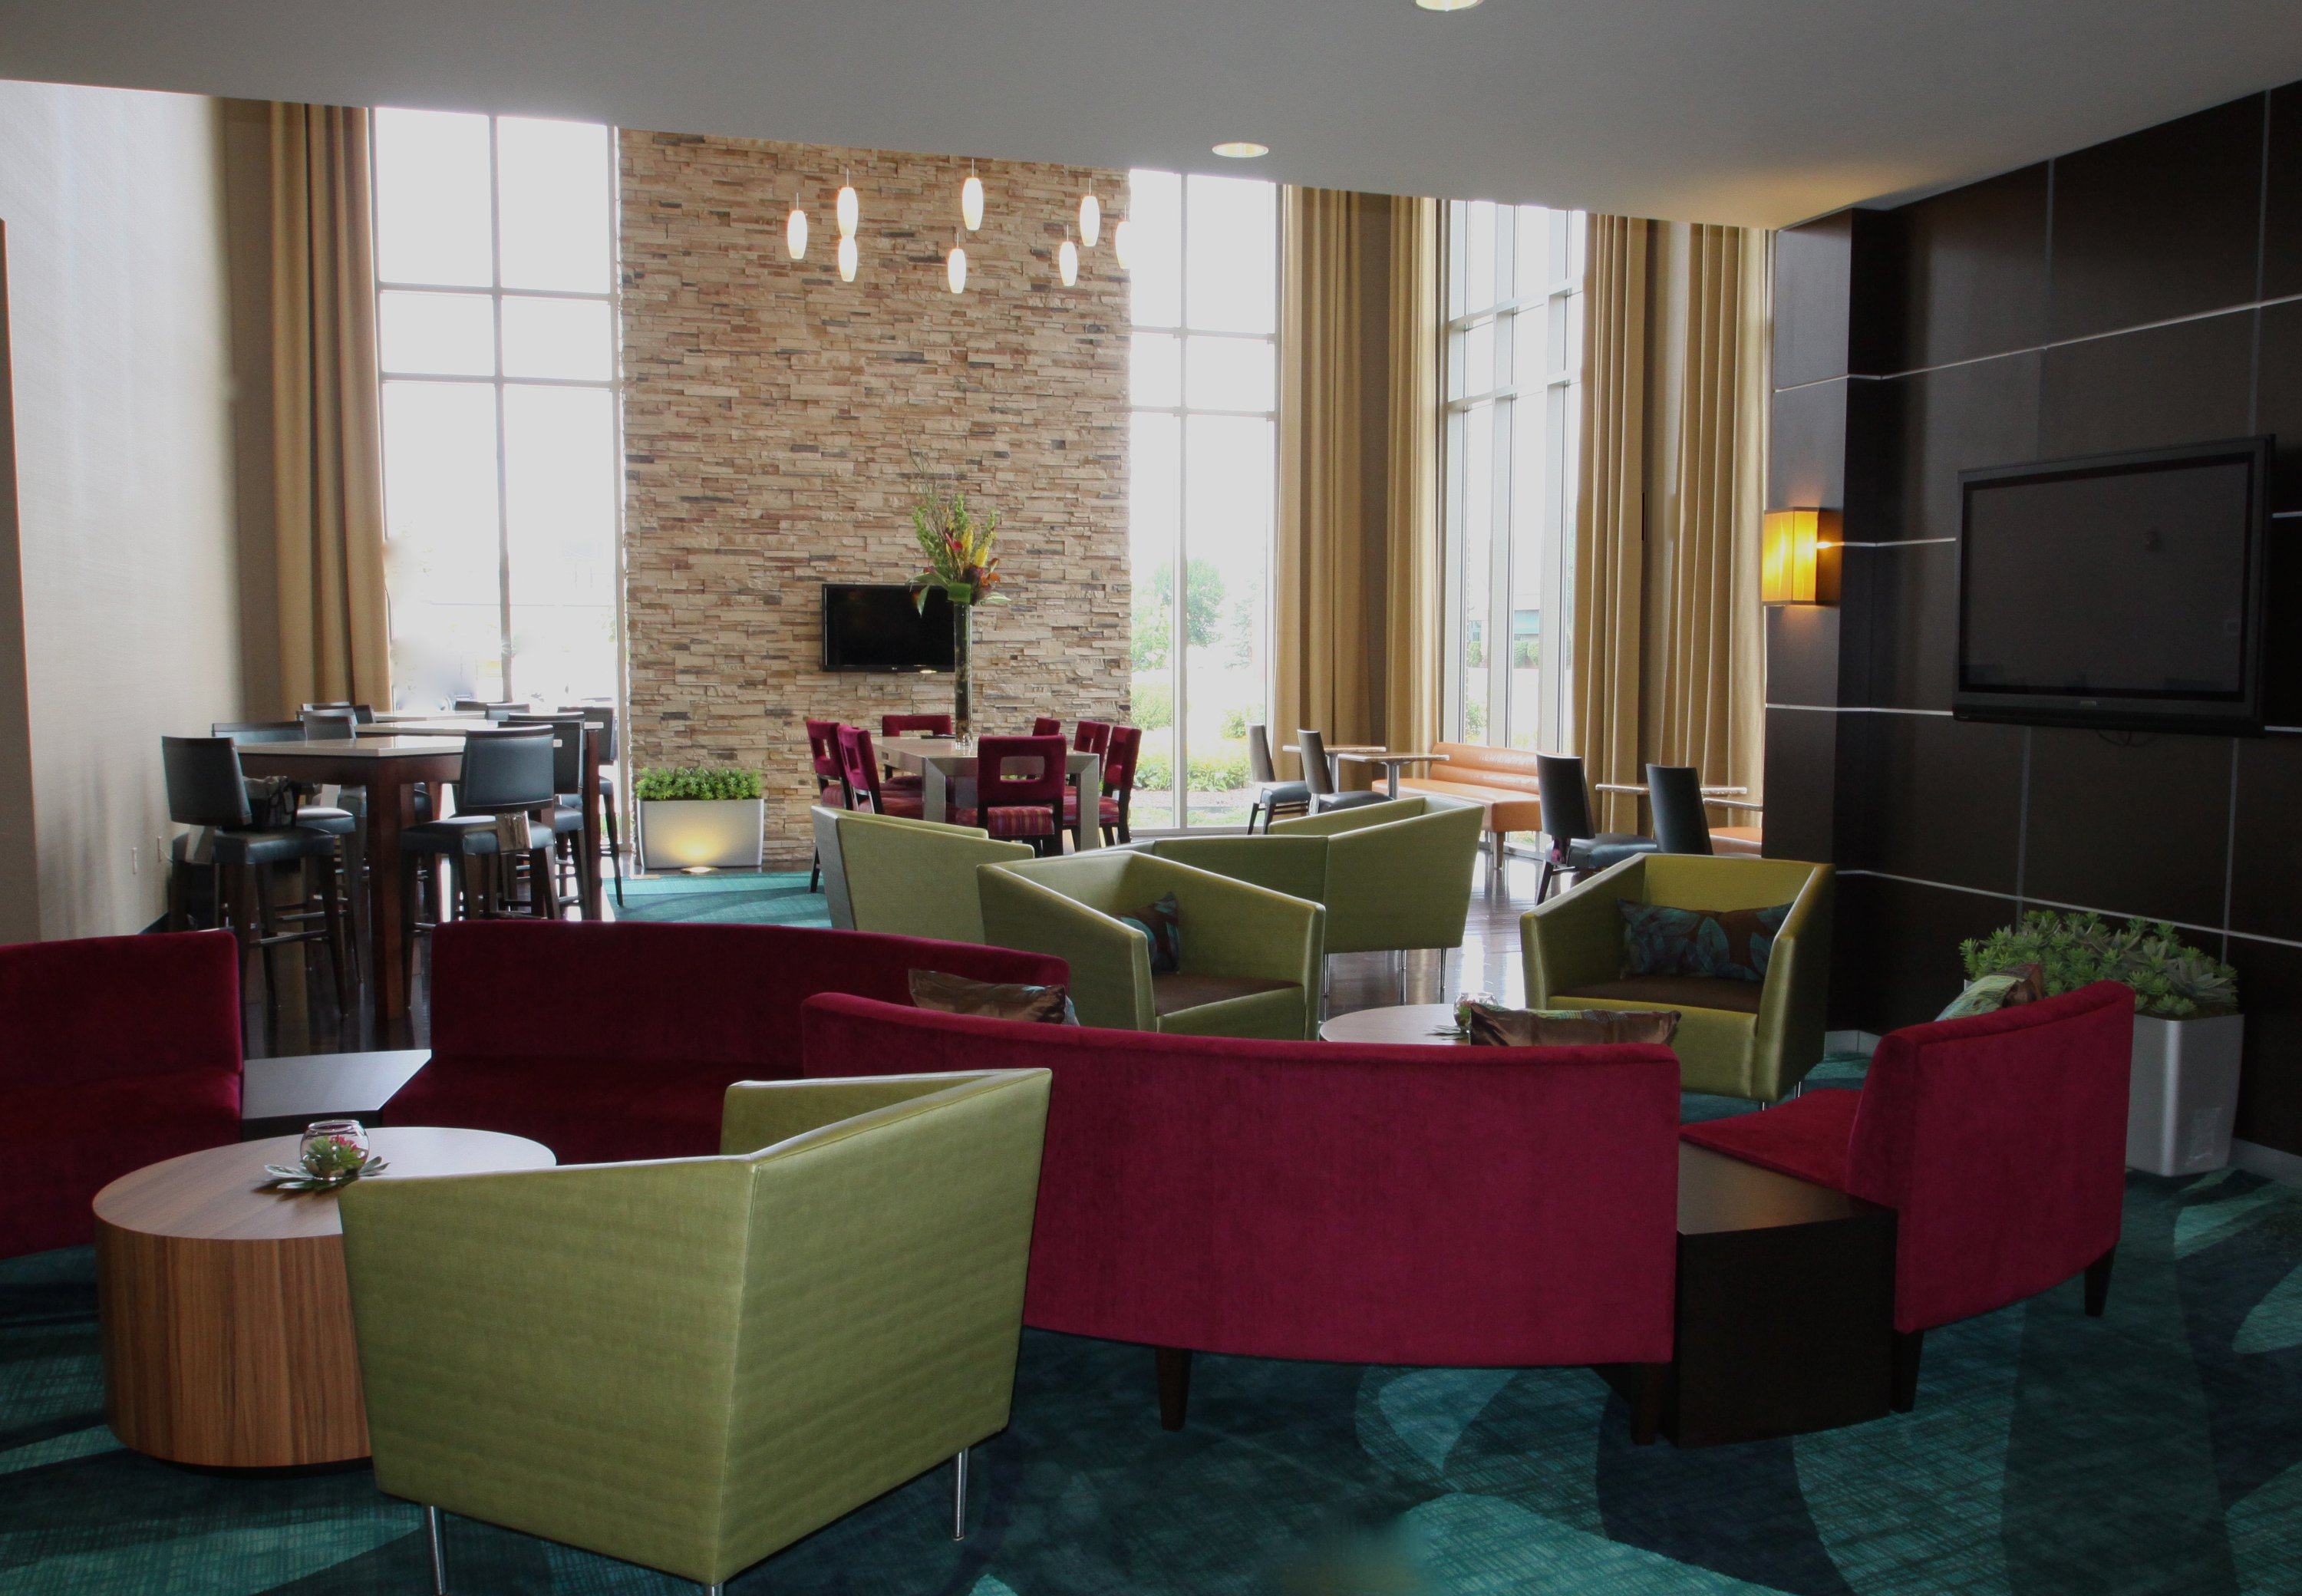 SpringHill Suites by Marriott Green Bay image 7